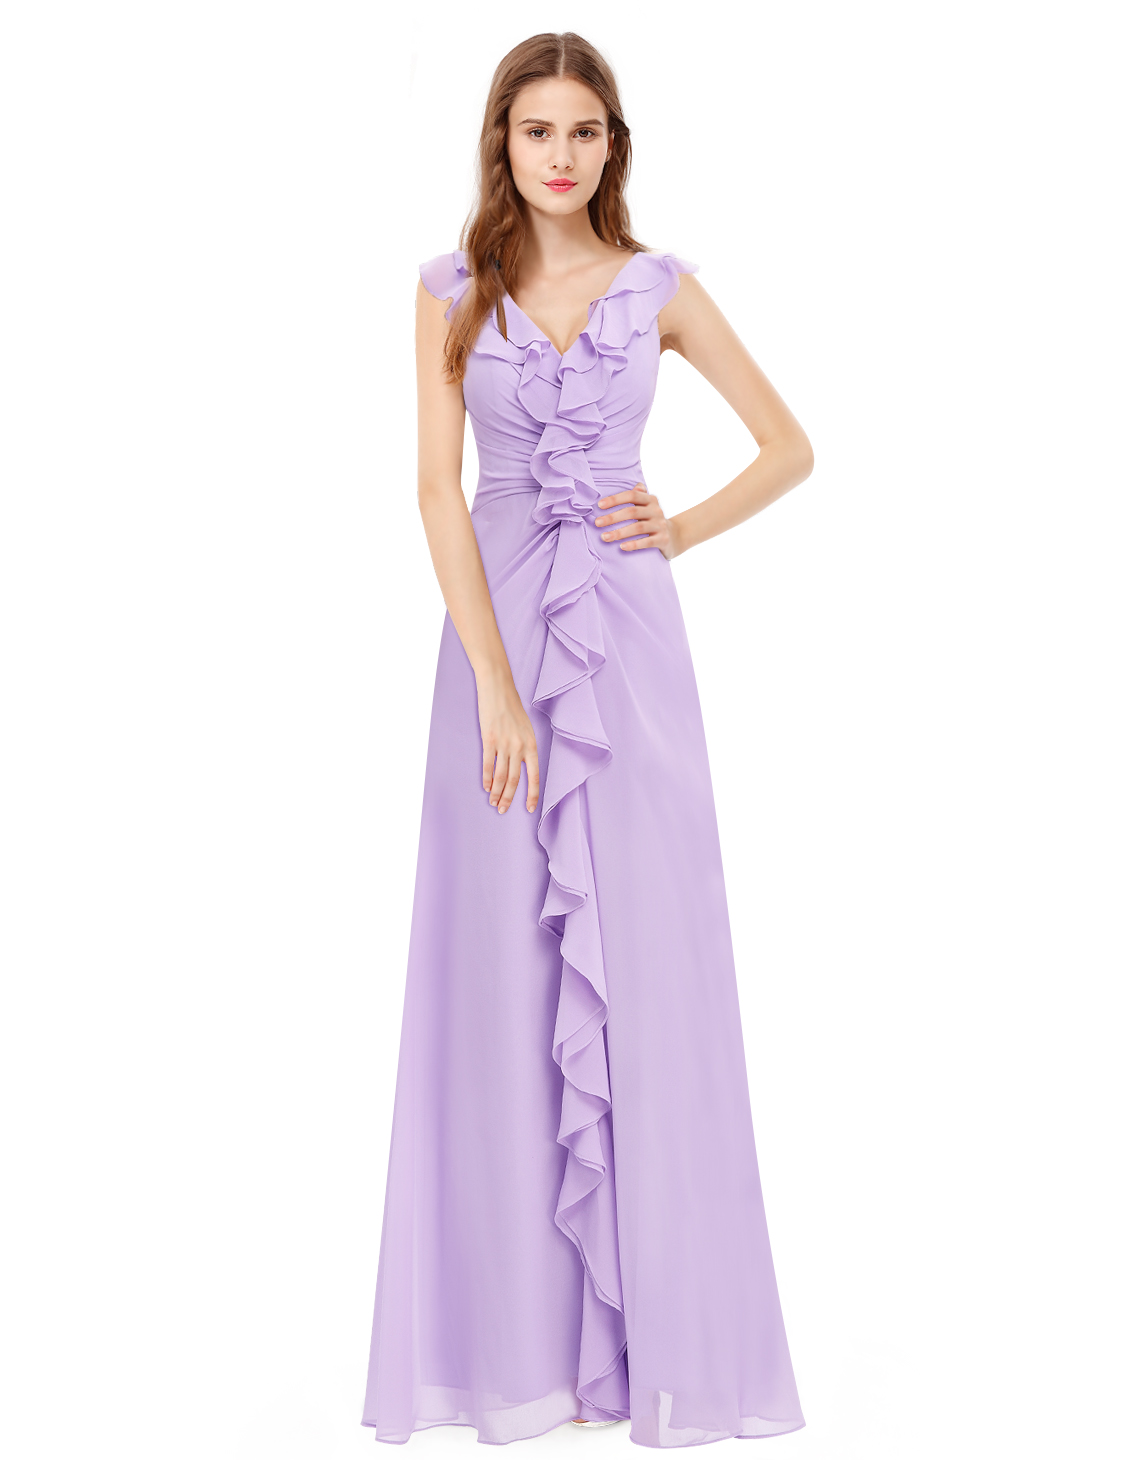 Bridesmaid Formal Ball Gown Party Light Purple Dress Ever-Pretty ...